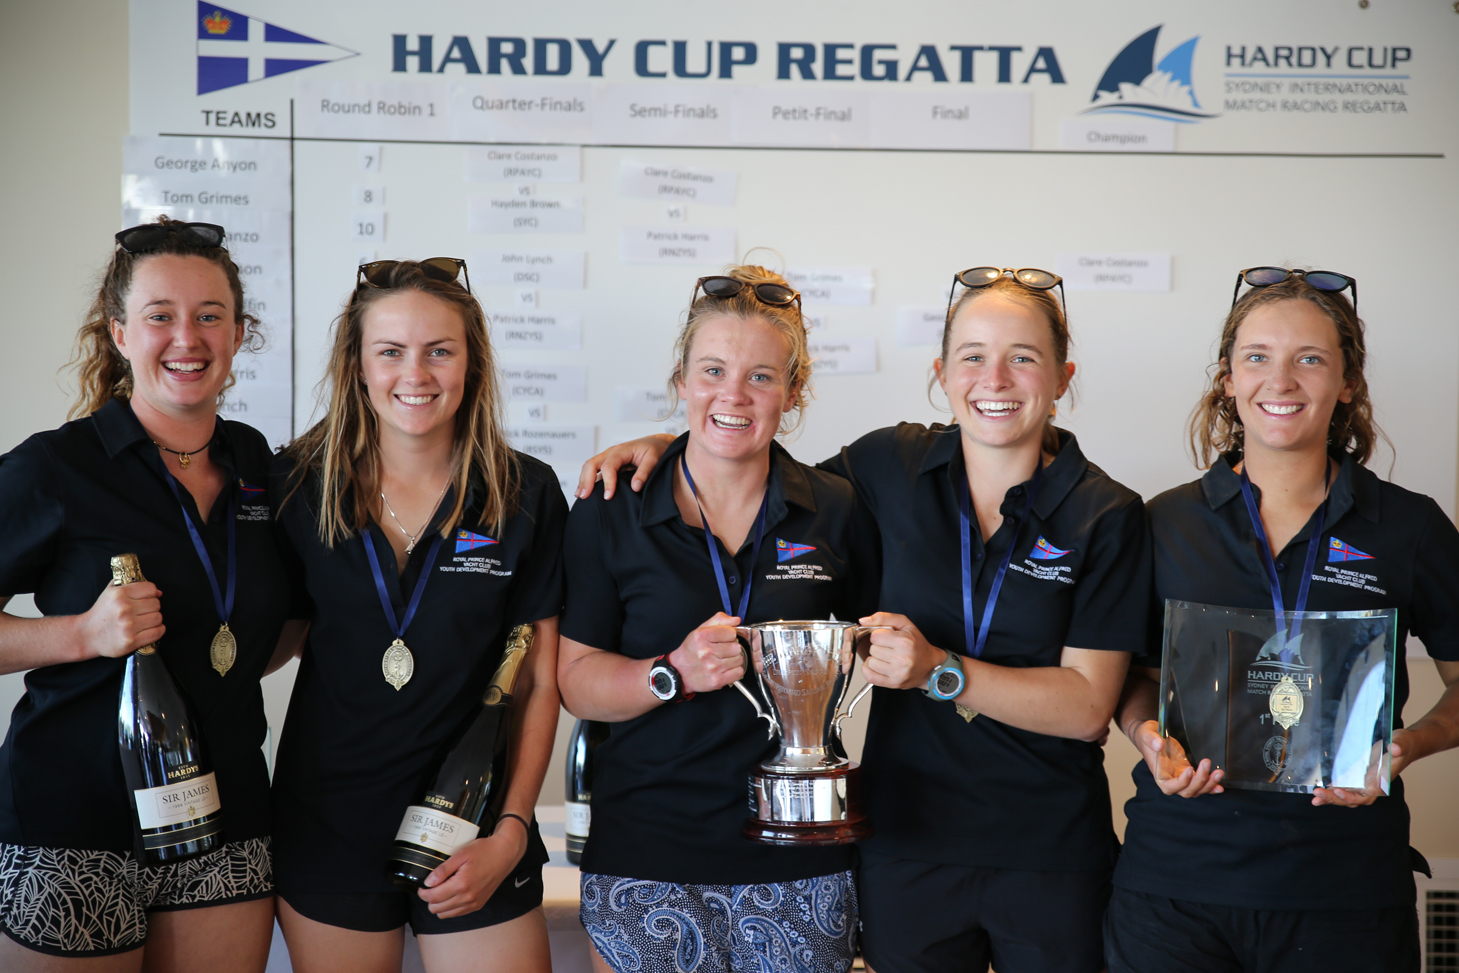 Hardy Cup winners Credit Darcie C Photography